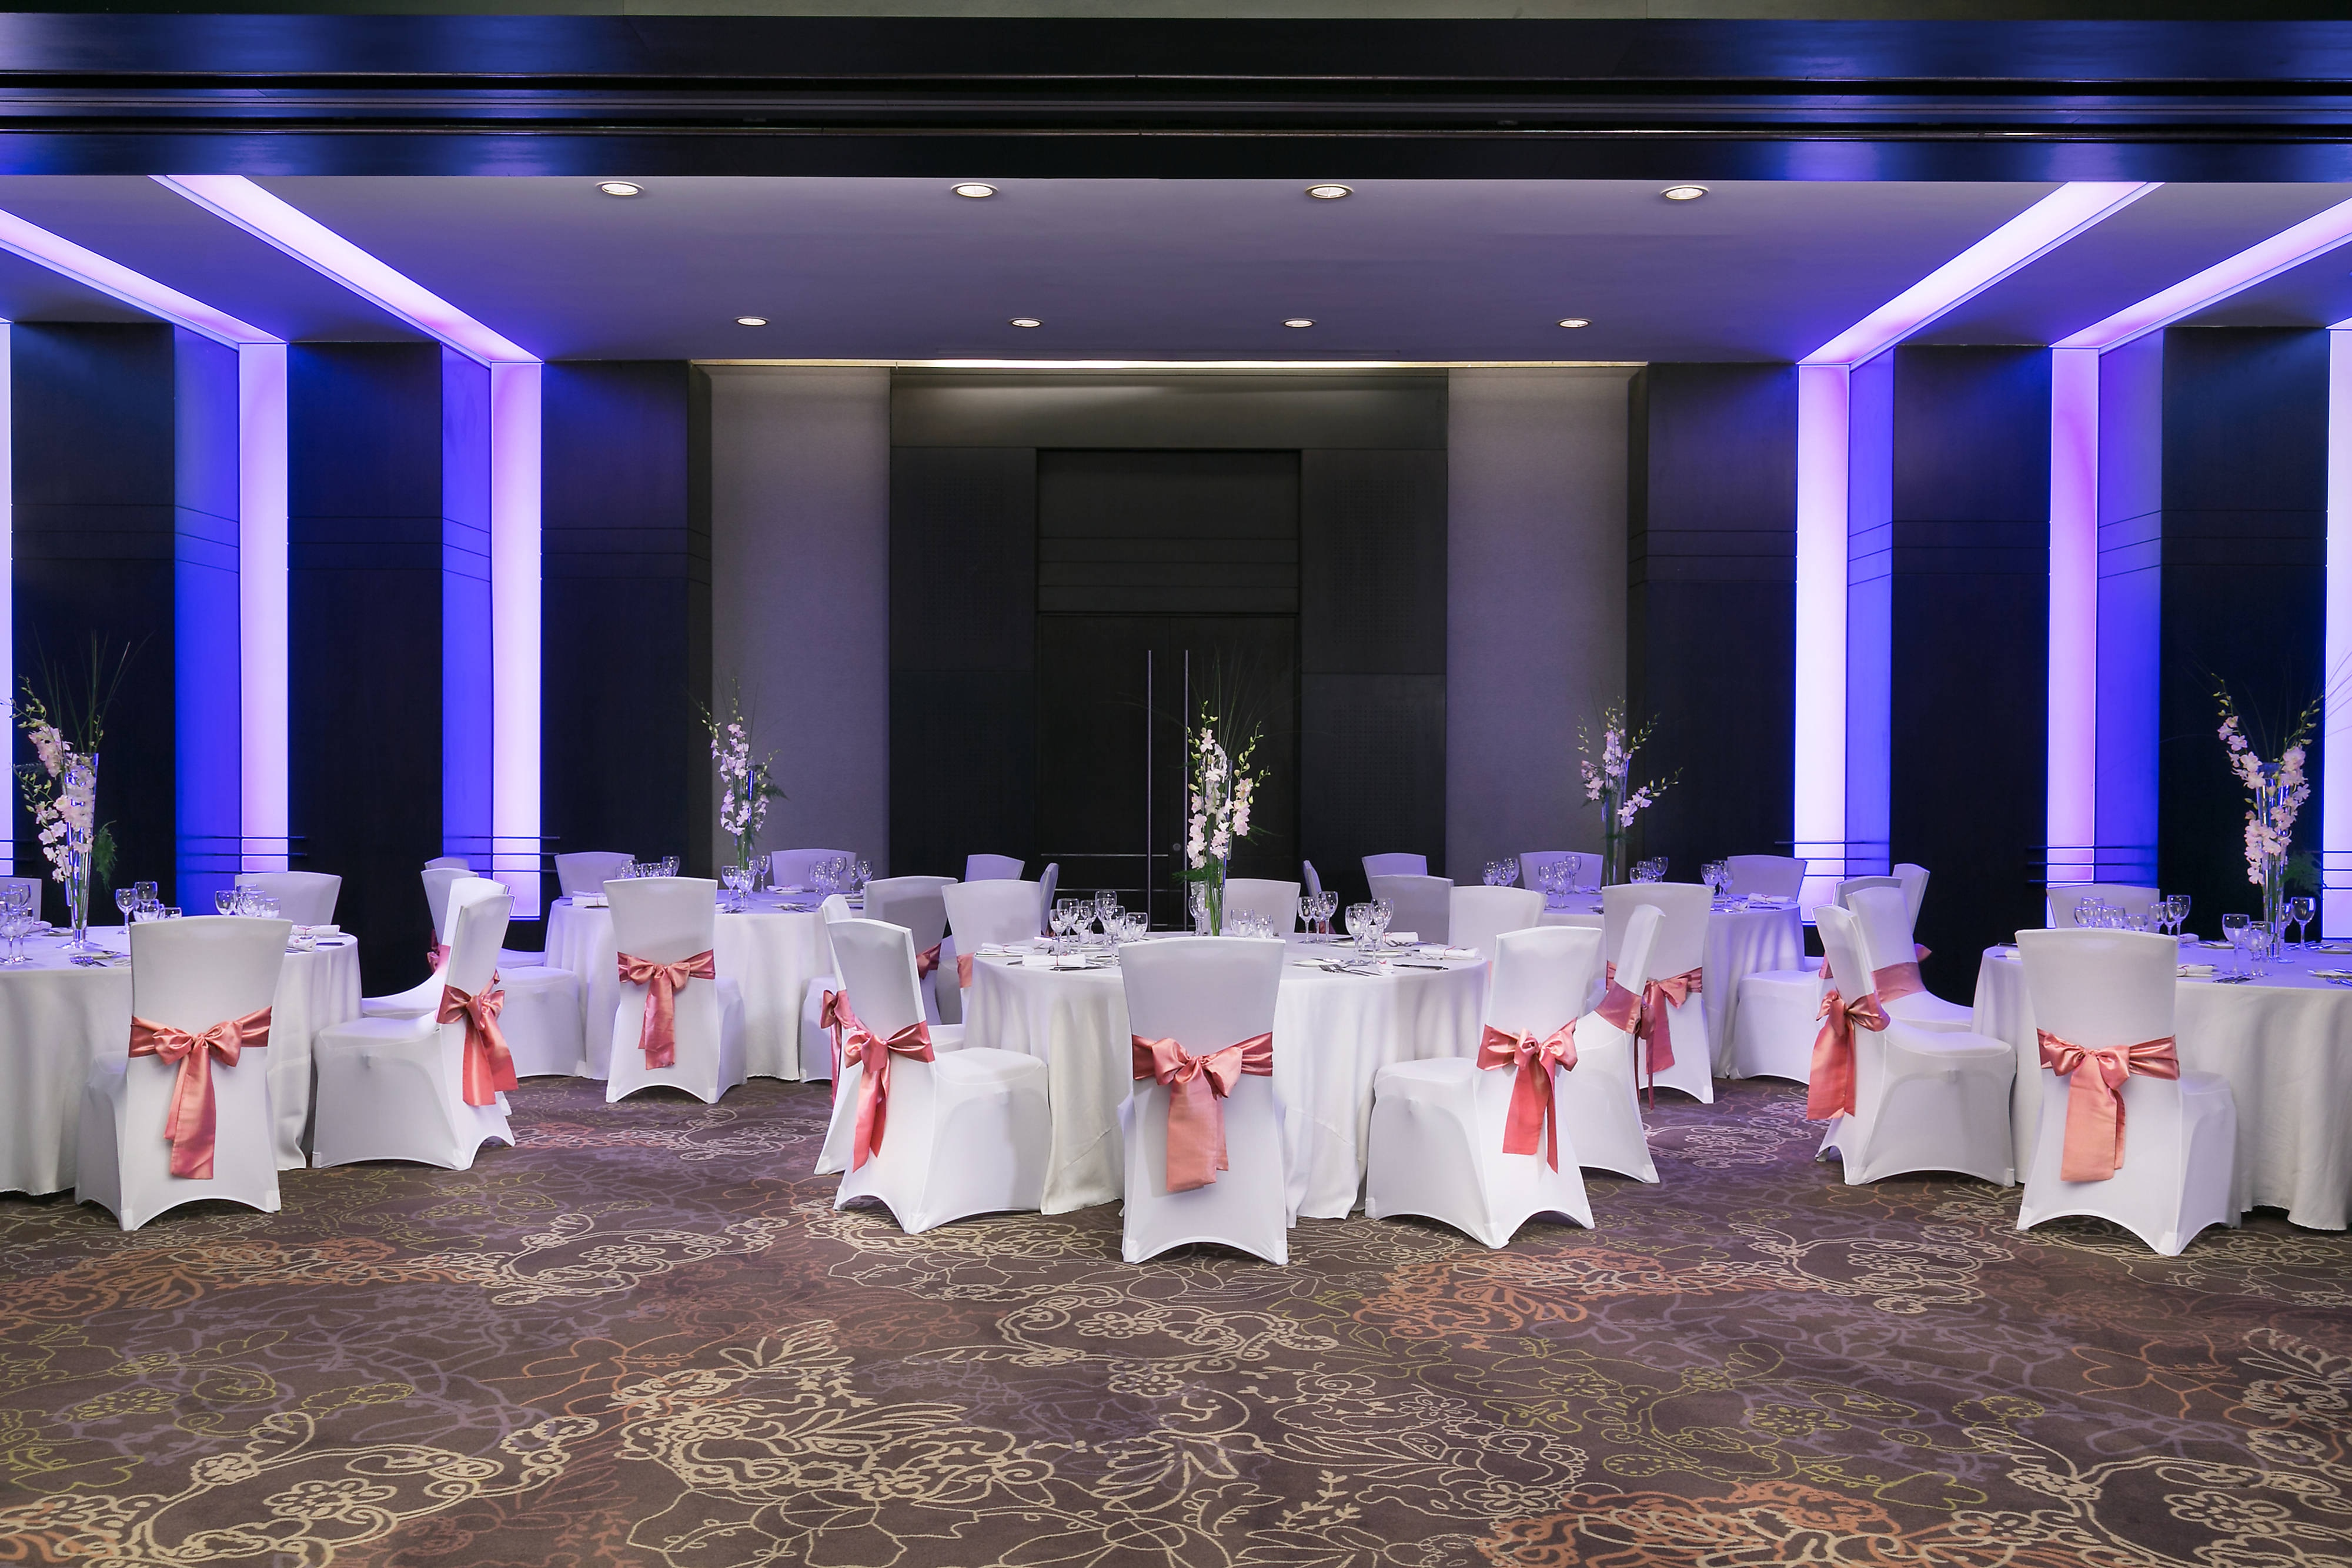 Ballroom 'Wedding Reception